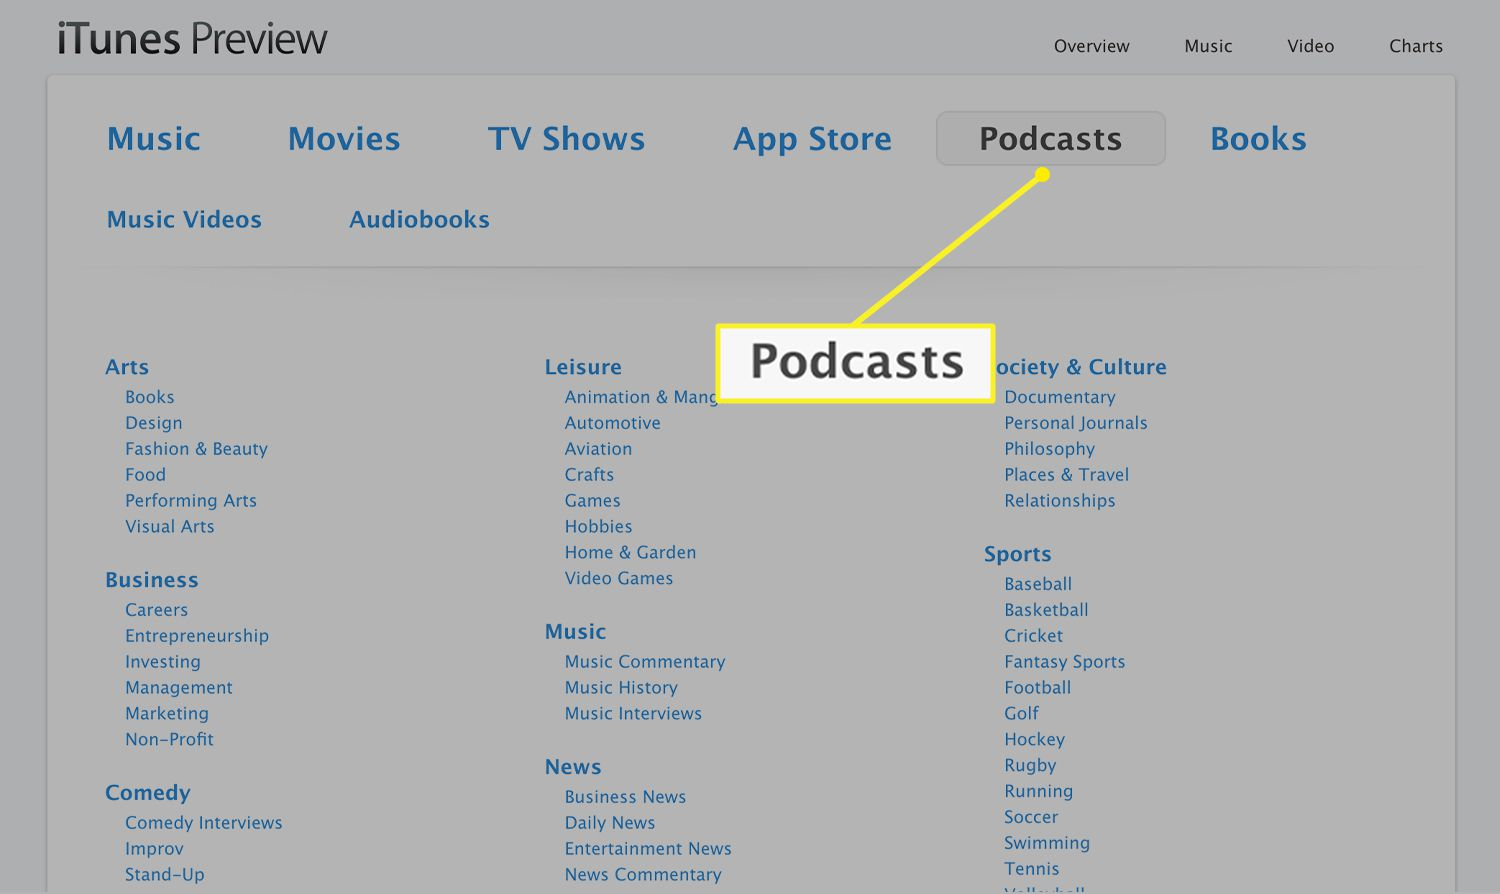 Podcasts tab highlighted in the iTunes Preview screen